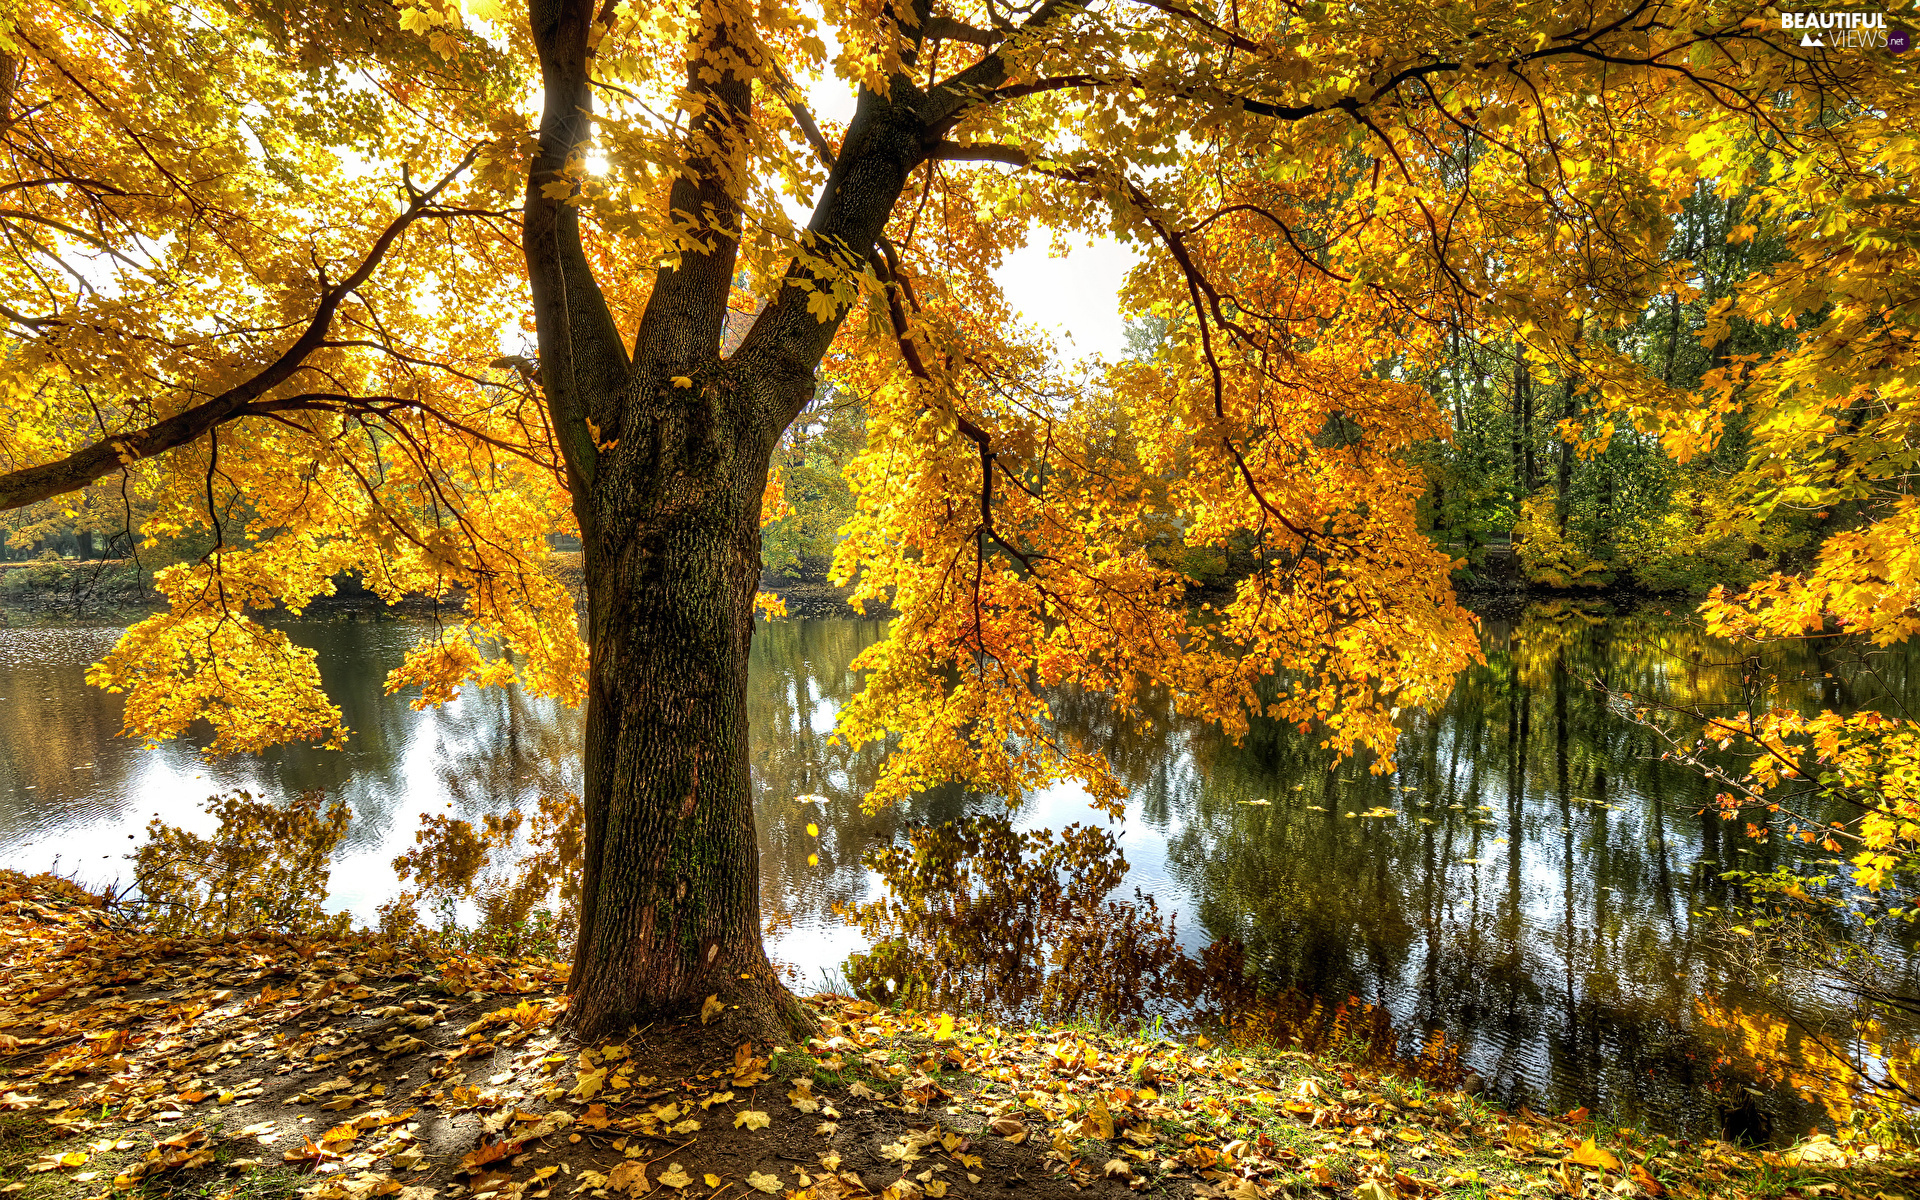 viewes, Pond - car, Leaf, autumn, Yellow, trees